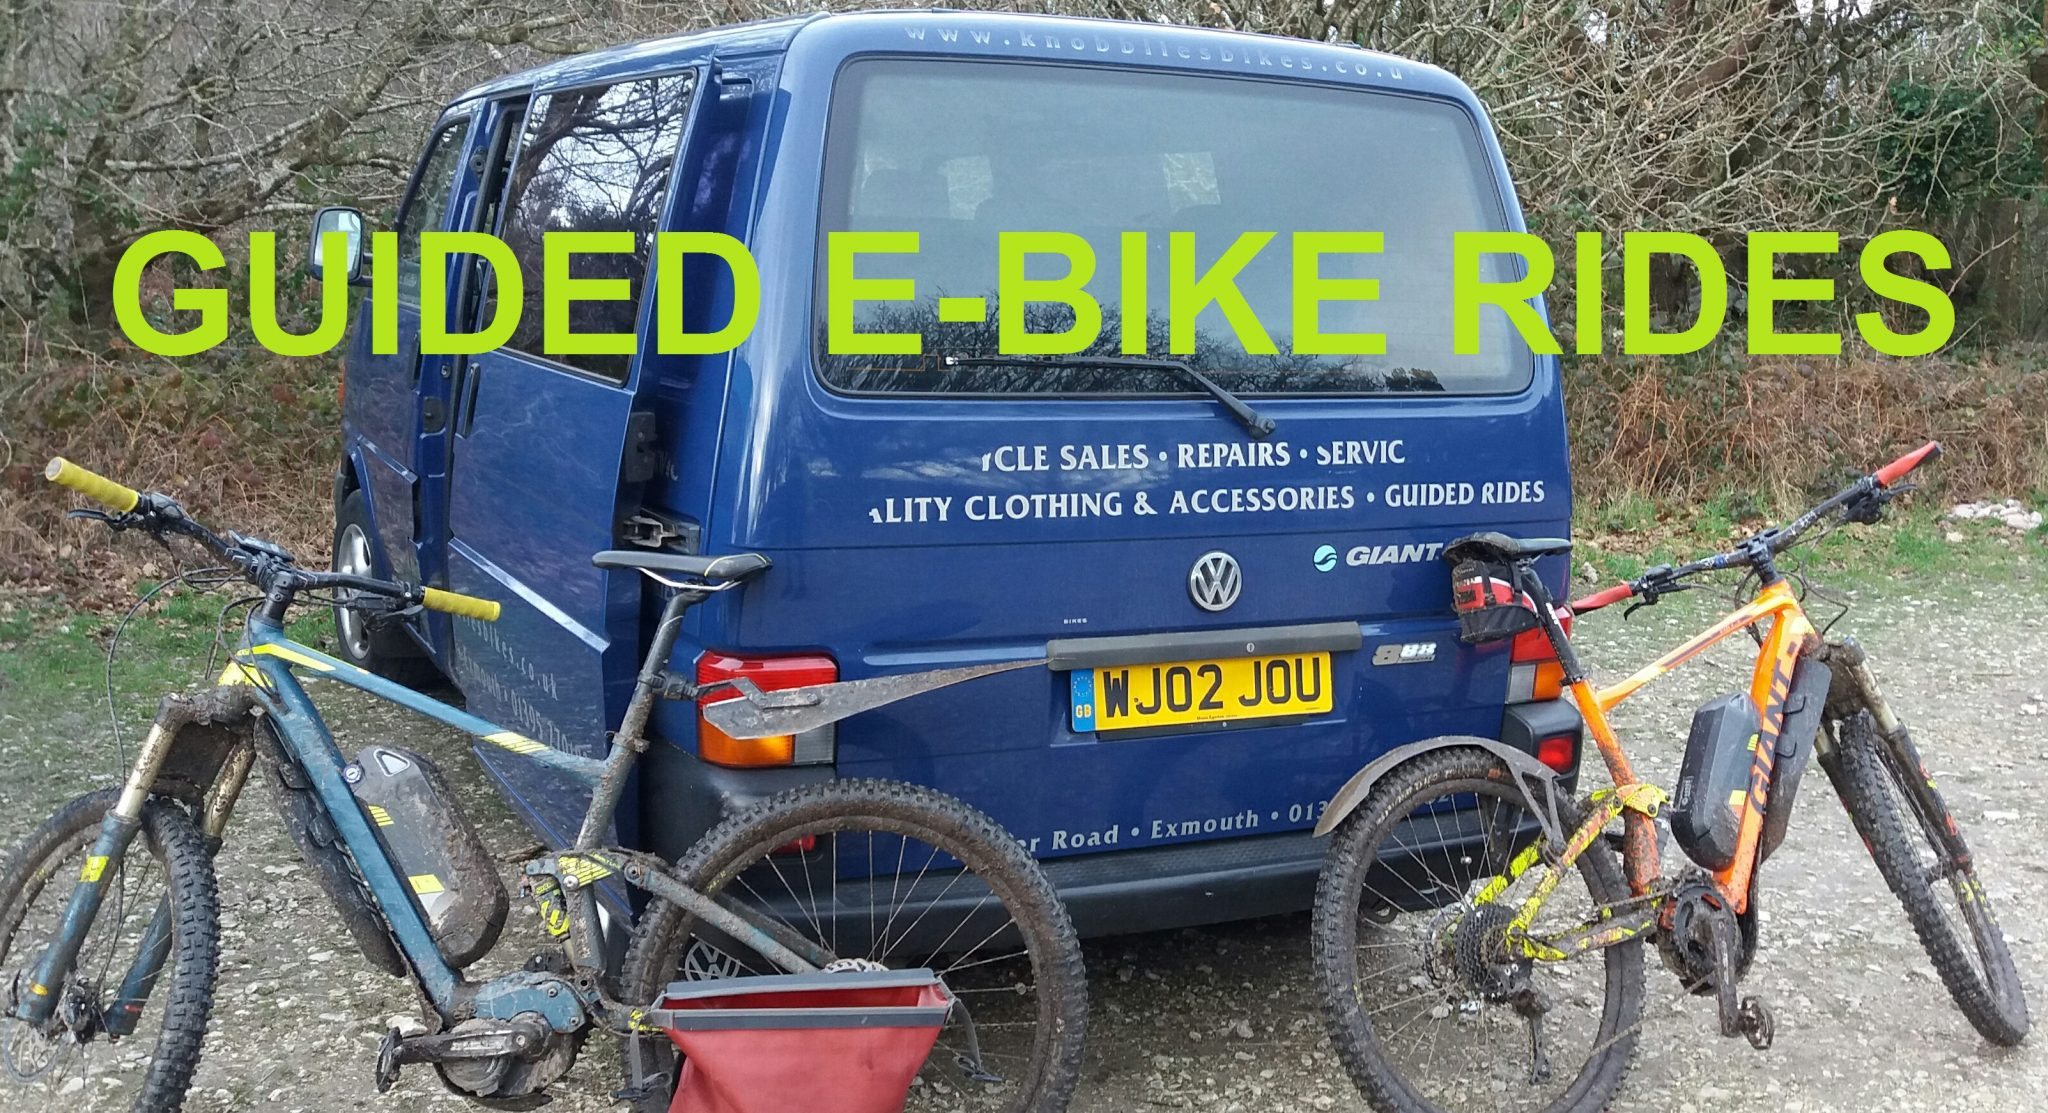 GUIDED EBIKE RIDES